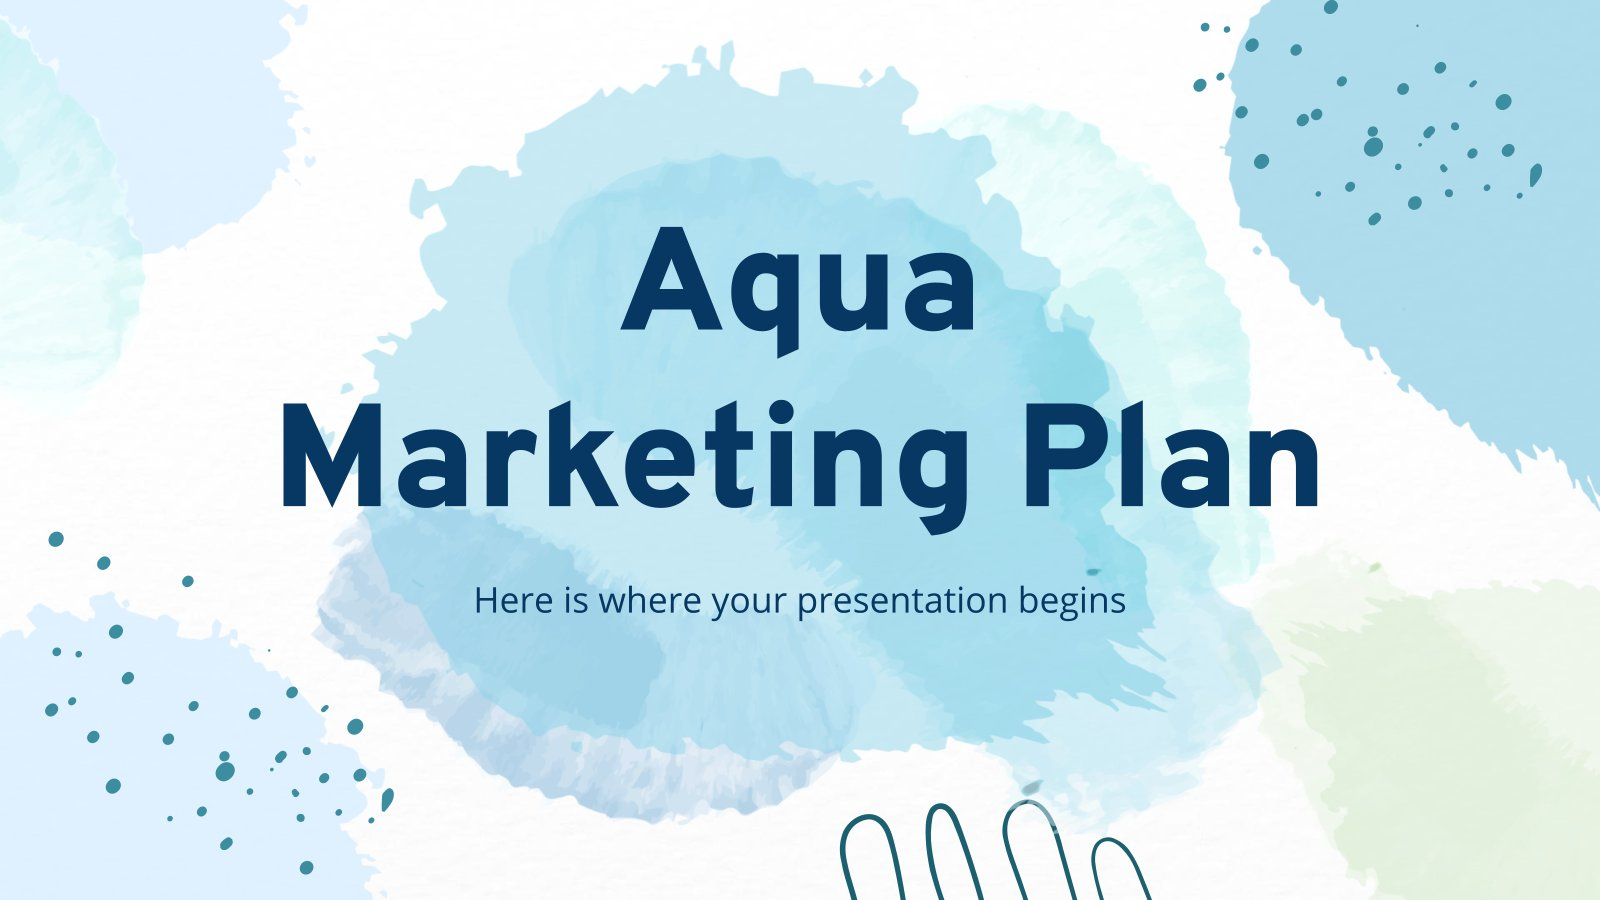 Aqua Marketingplan Präsentationsvorlage